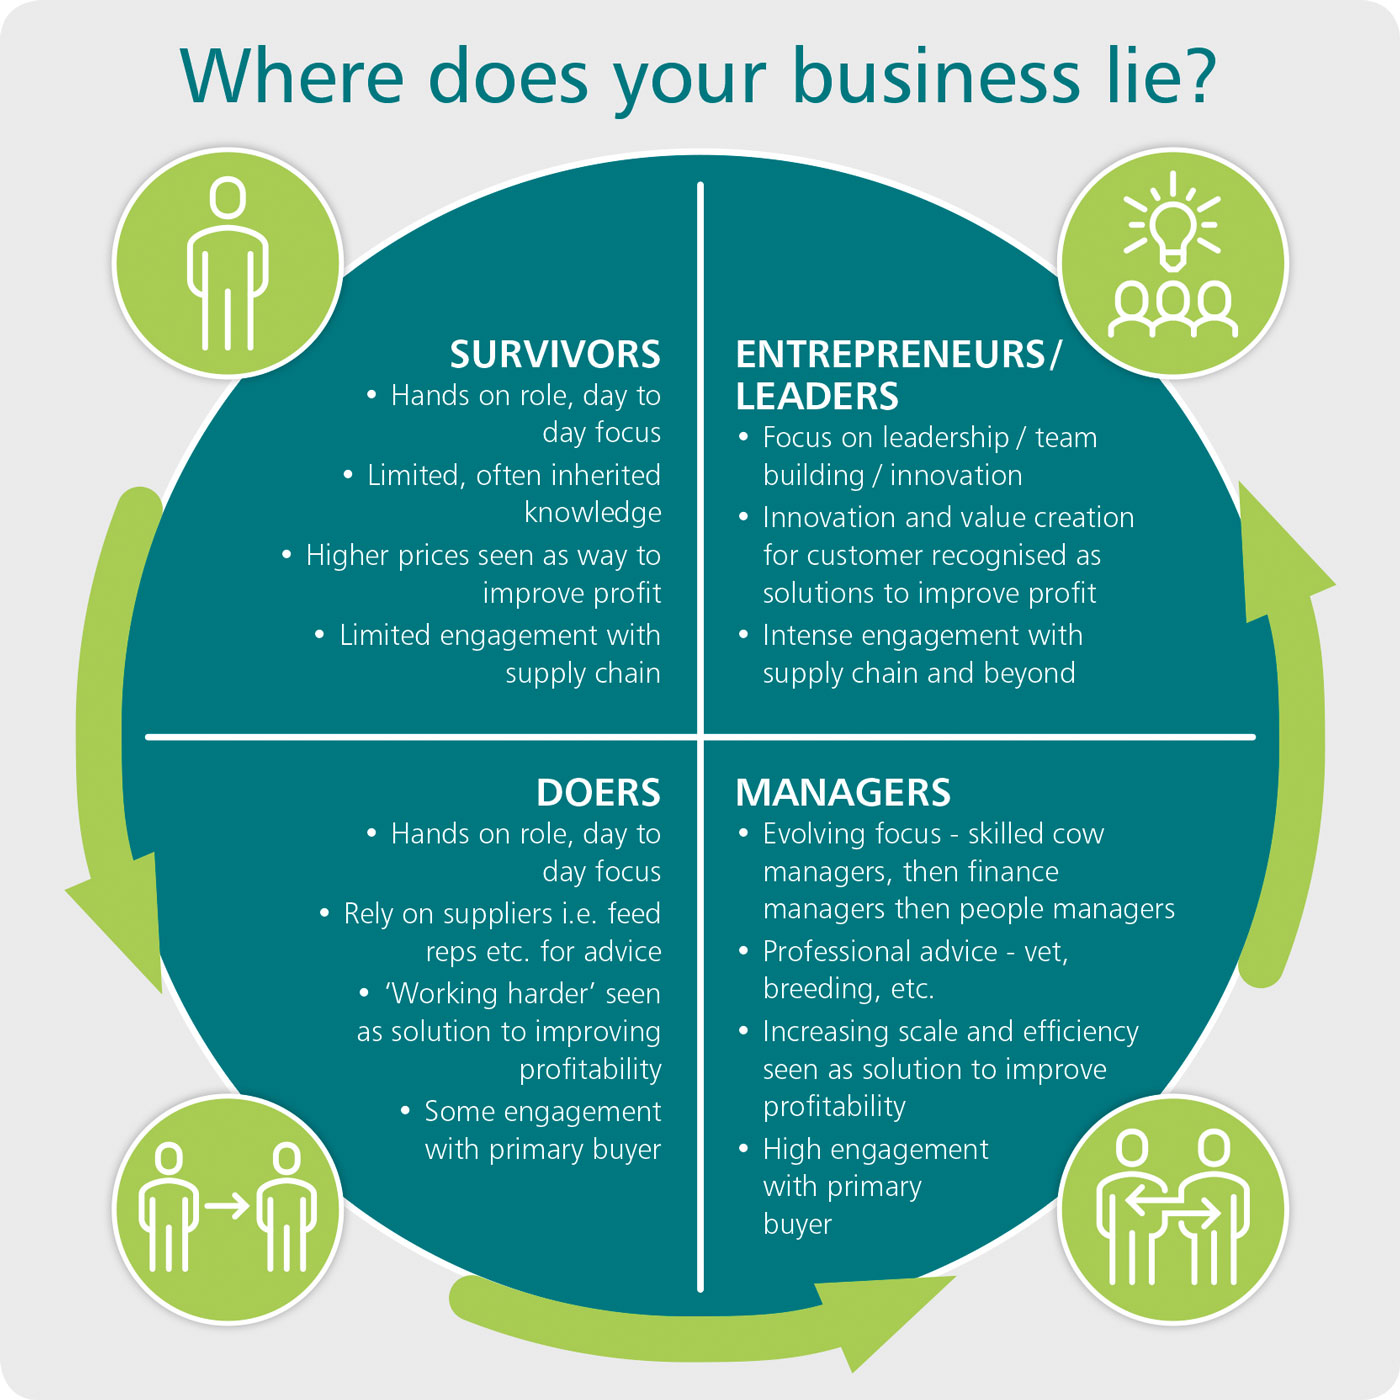 Where does your business lie?